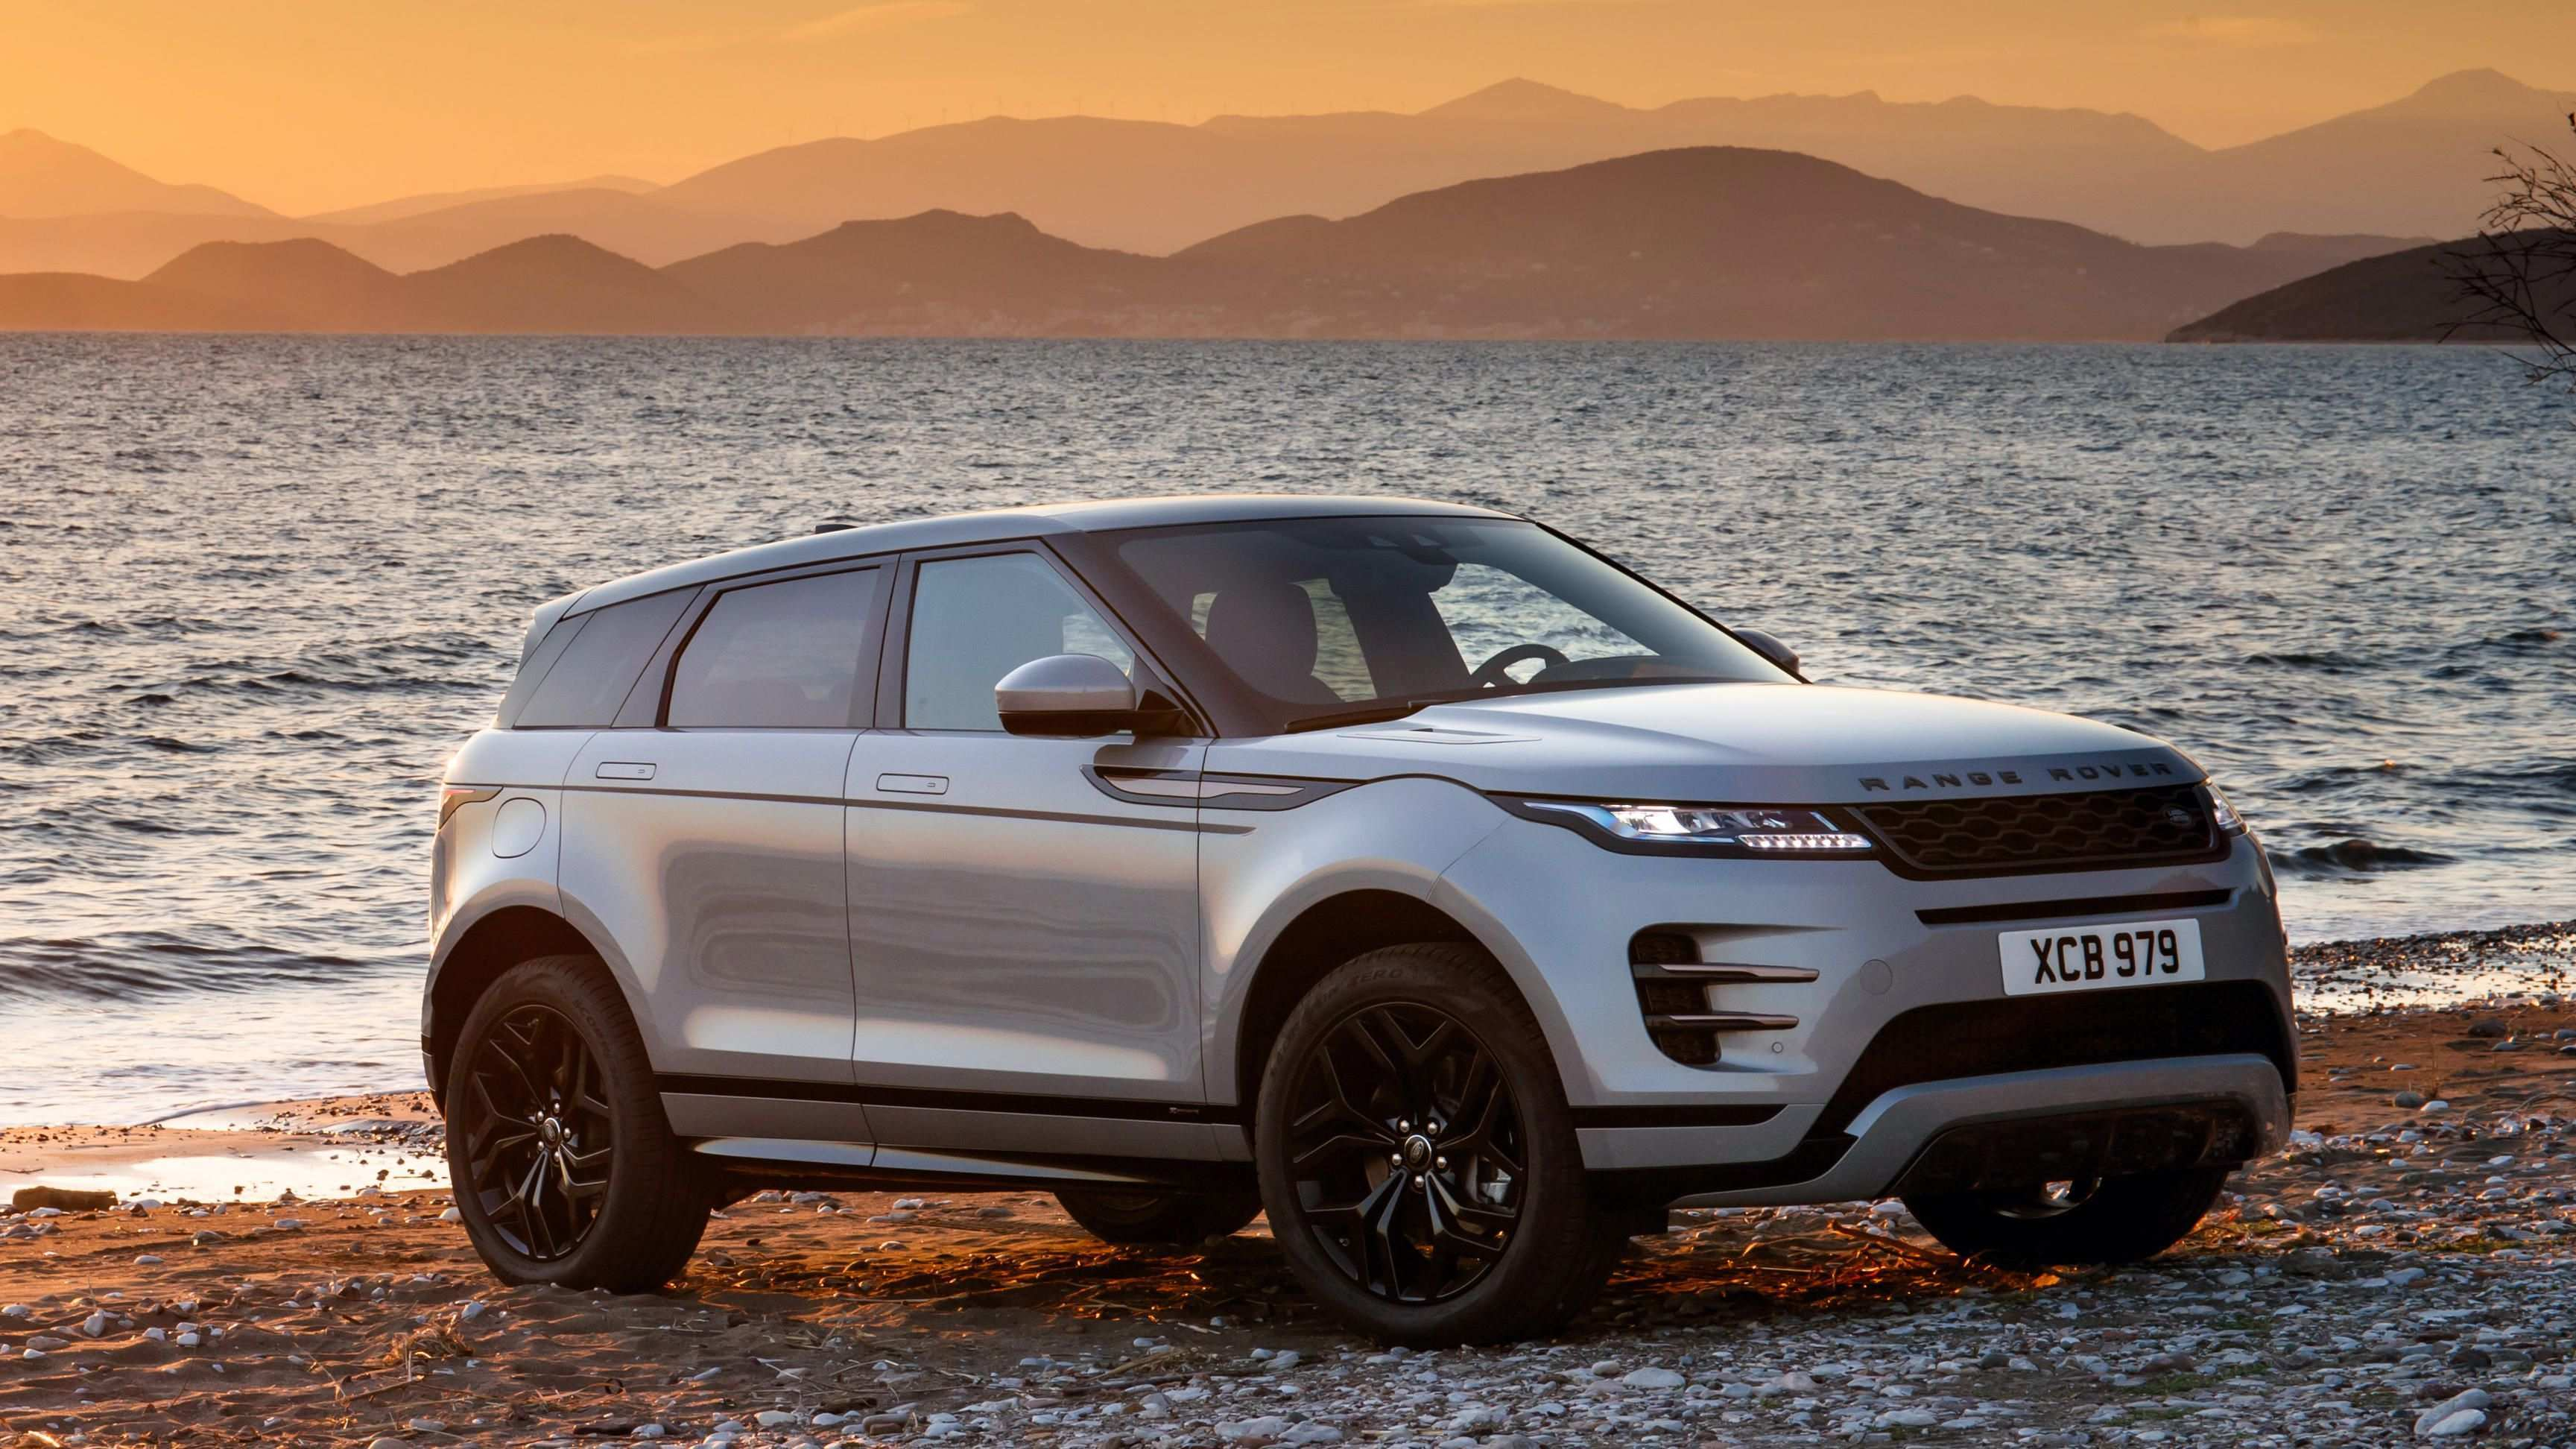 65 The 2020 Range Rover Evoque Pictures